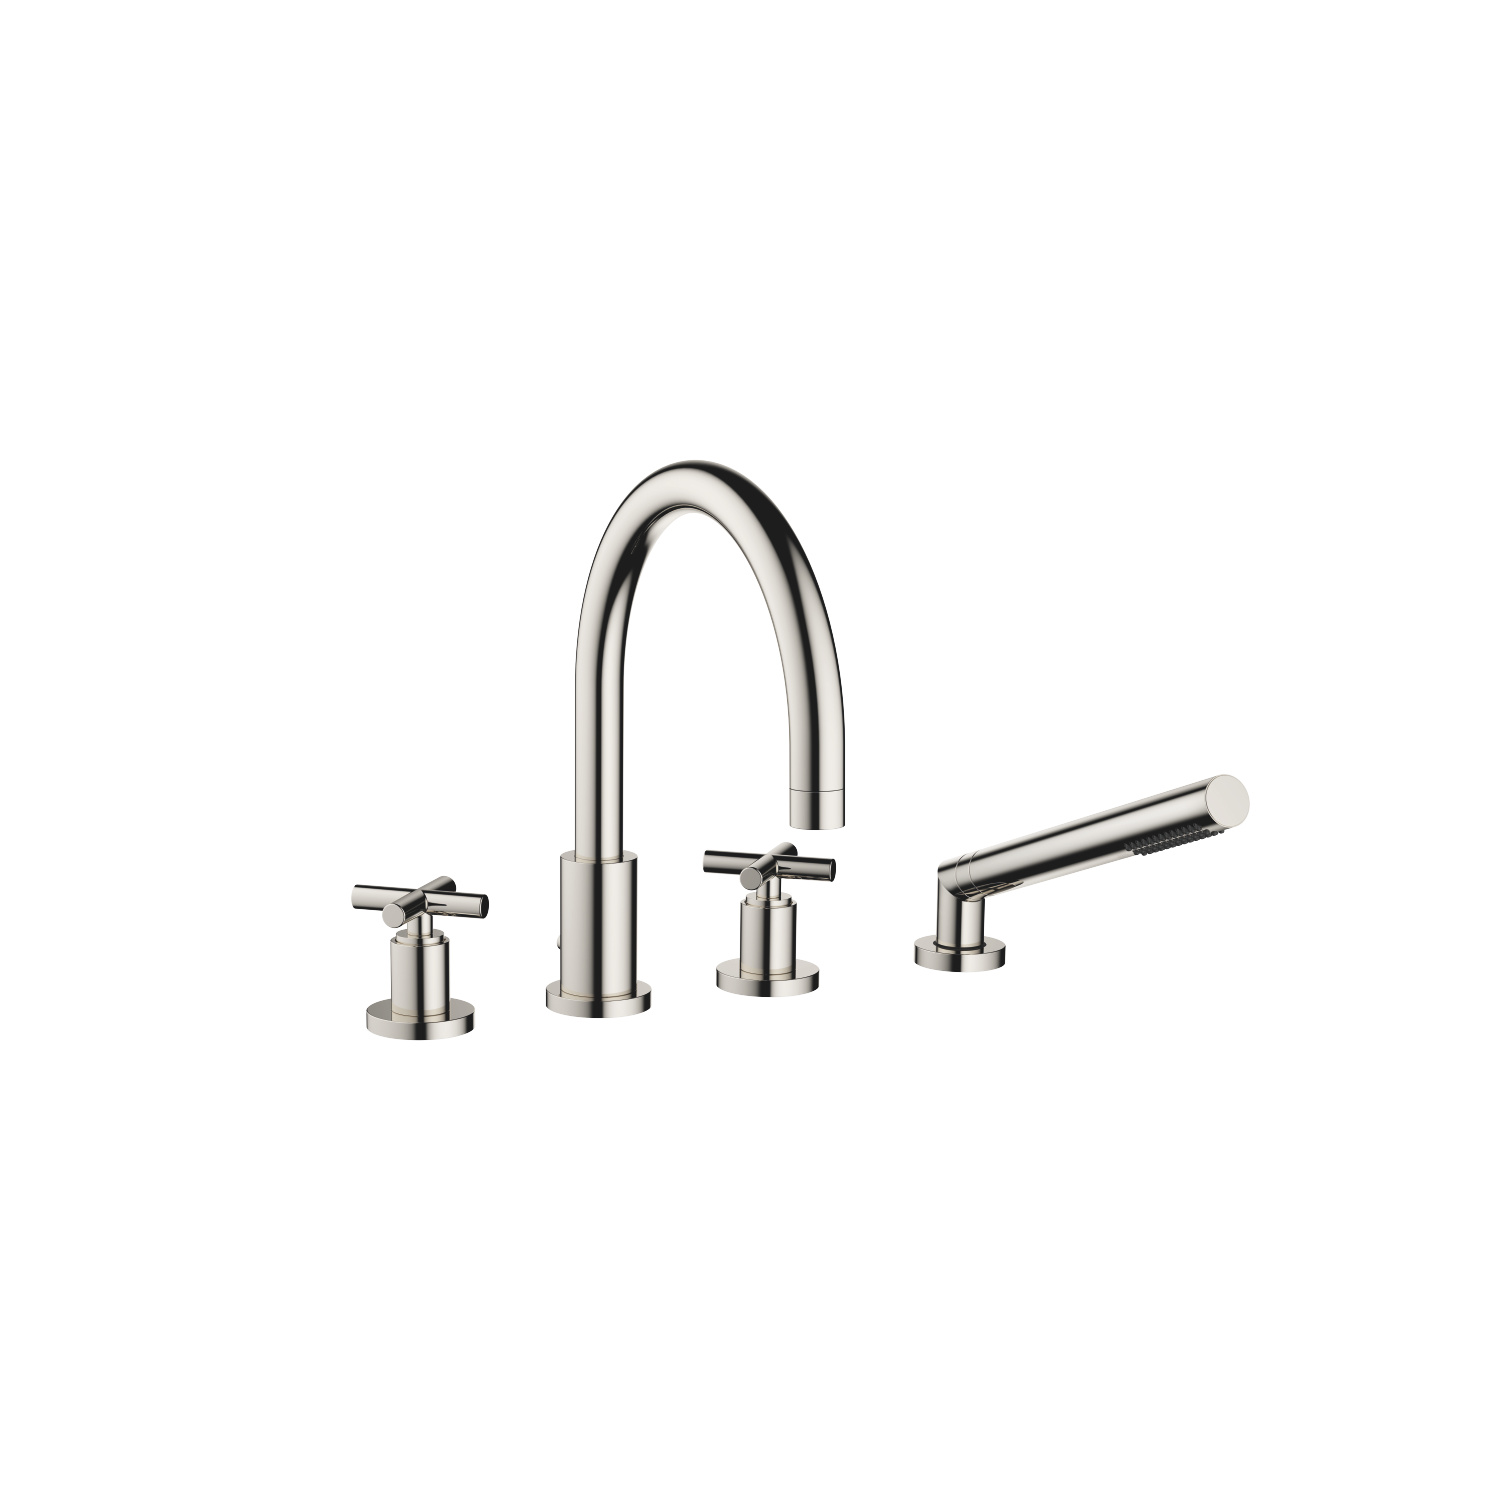 Deck-mounted tub mixer, with hand shower set for deck-mounted tub installation - platinum